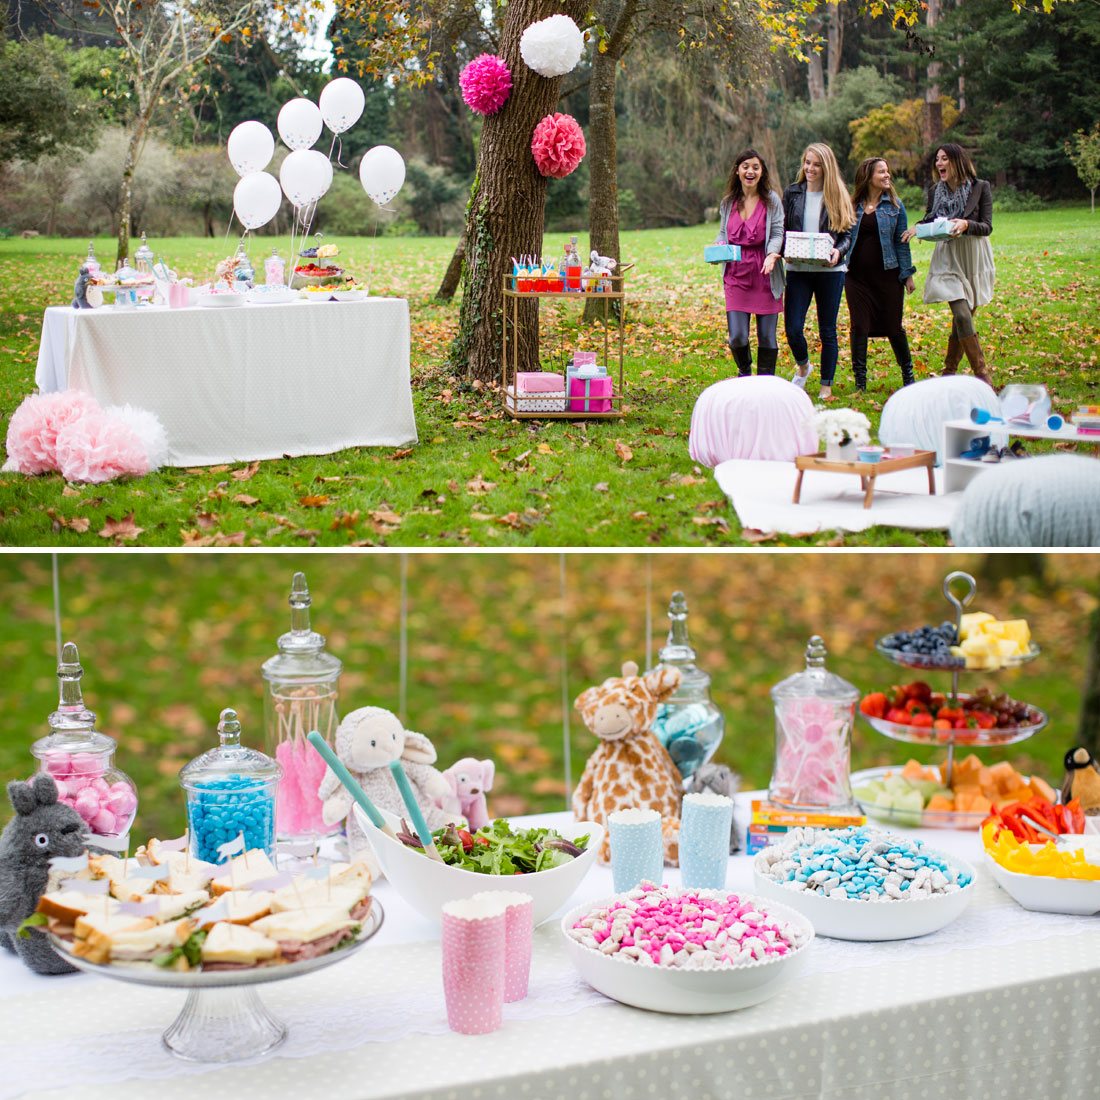 Summer Inspired Outdoor Baby Shower Decoration Ideas. Backyard Designs Ideas Gardens. Cake Ideas Angry Birds. Date Ideas Rochester Mi. Home Ideas Diy. Design Ideas Children's Bedroom. Photography Ideas For Quinceanera. Baby Basket Ideas. Baby Jewellery Ideas